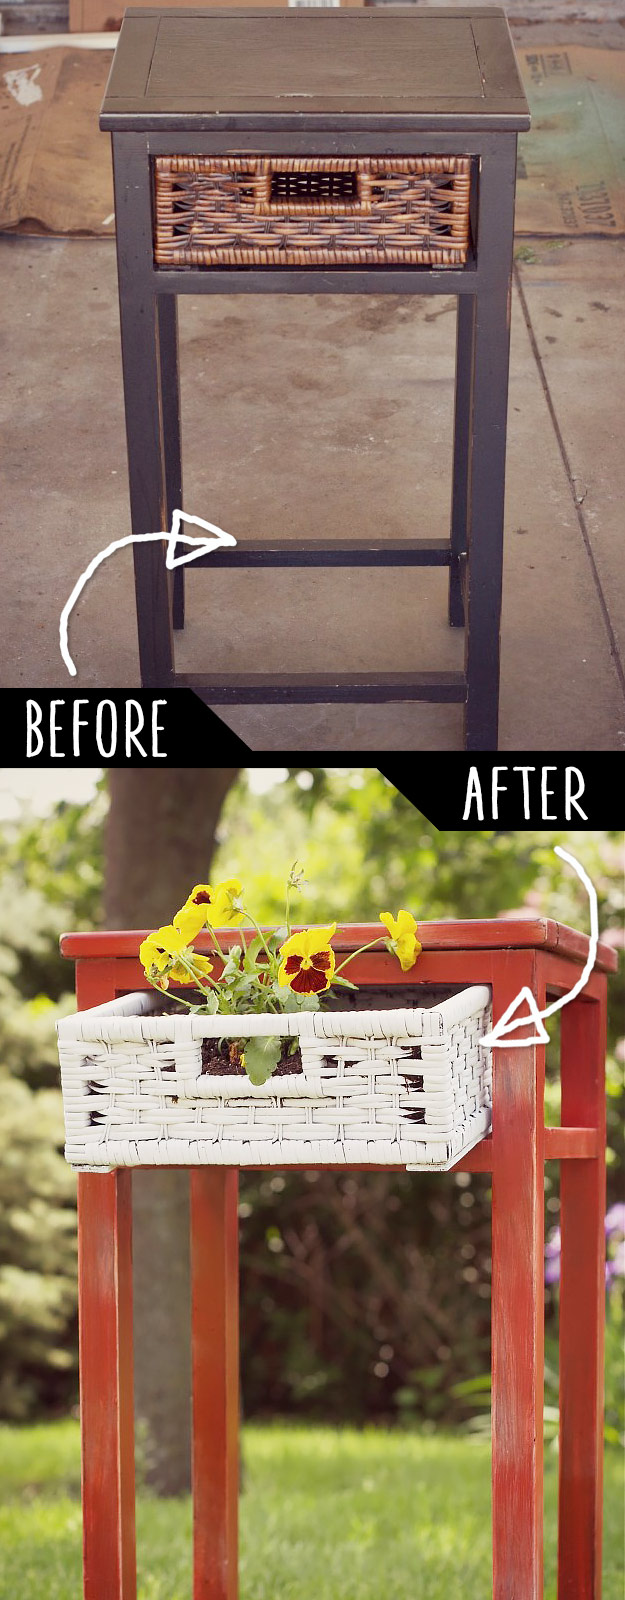 DIY Furniture Hacks   Upcycled Side Table into Planter   Cool Ideas for Creative Do It Yourself Furniture Made From Things You Might Not Expect #diy